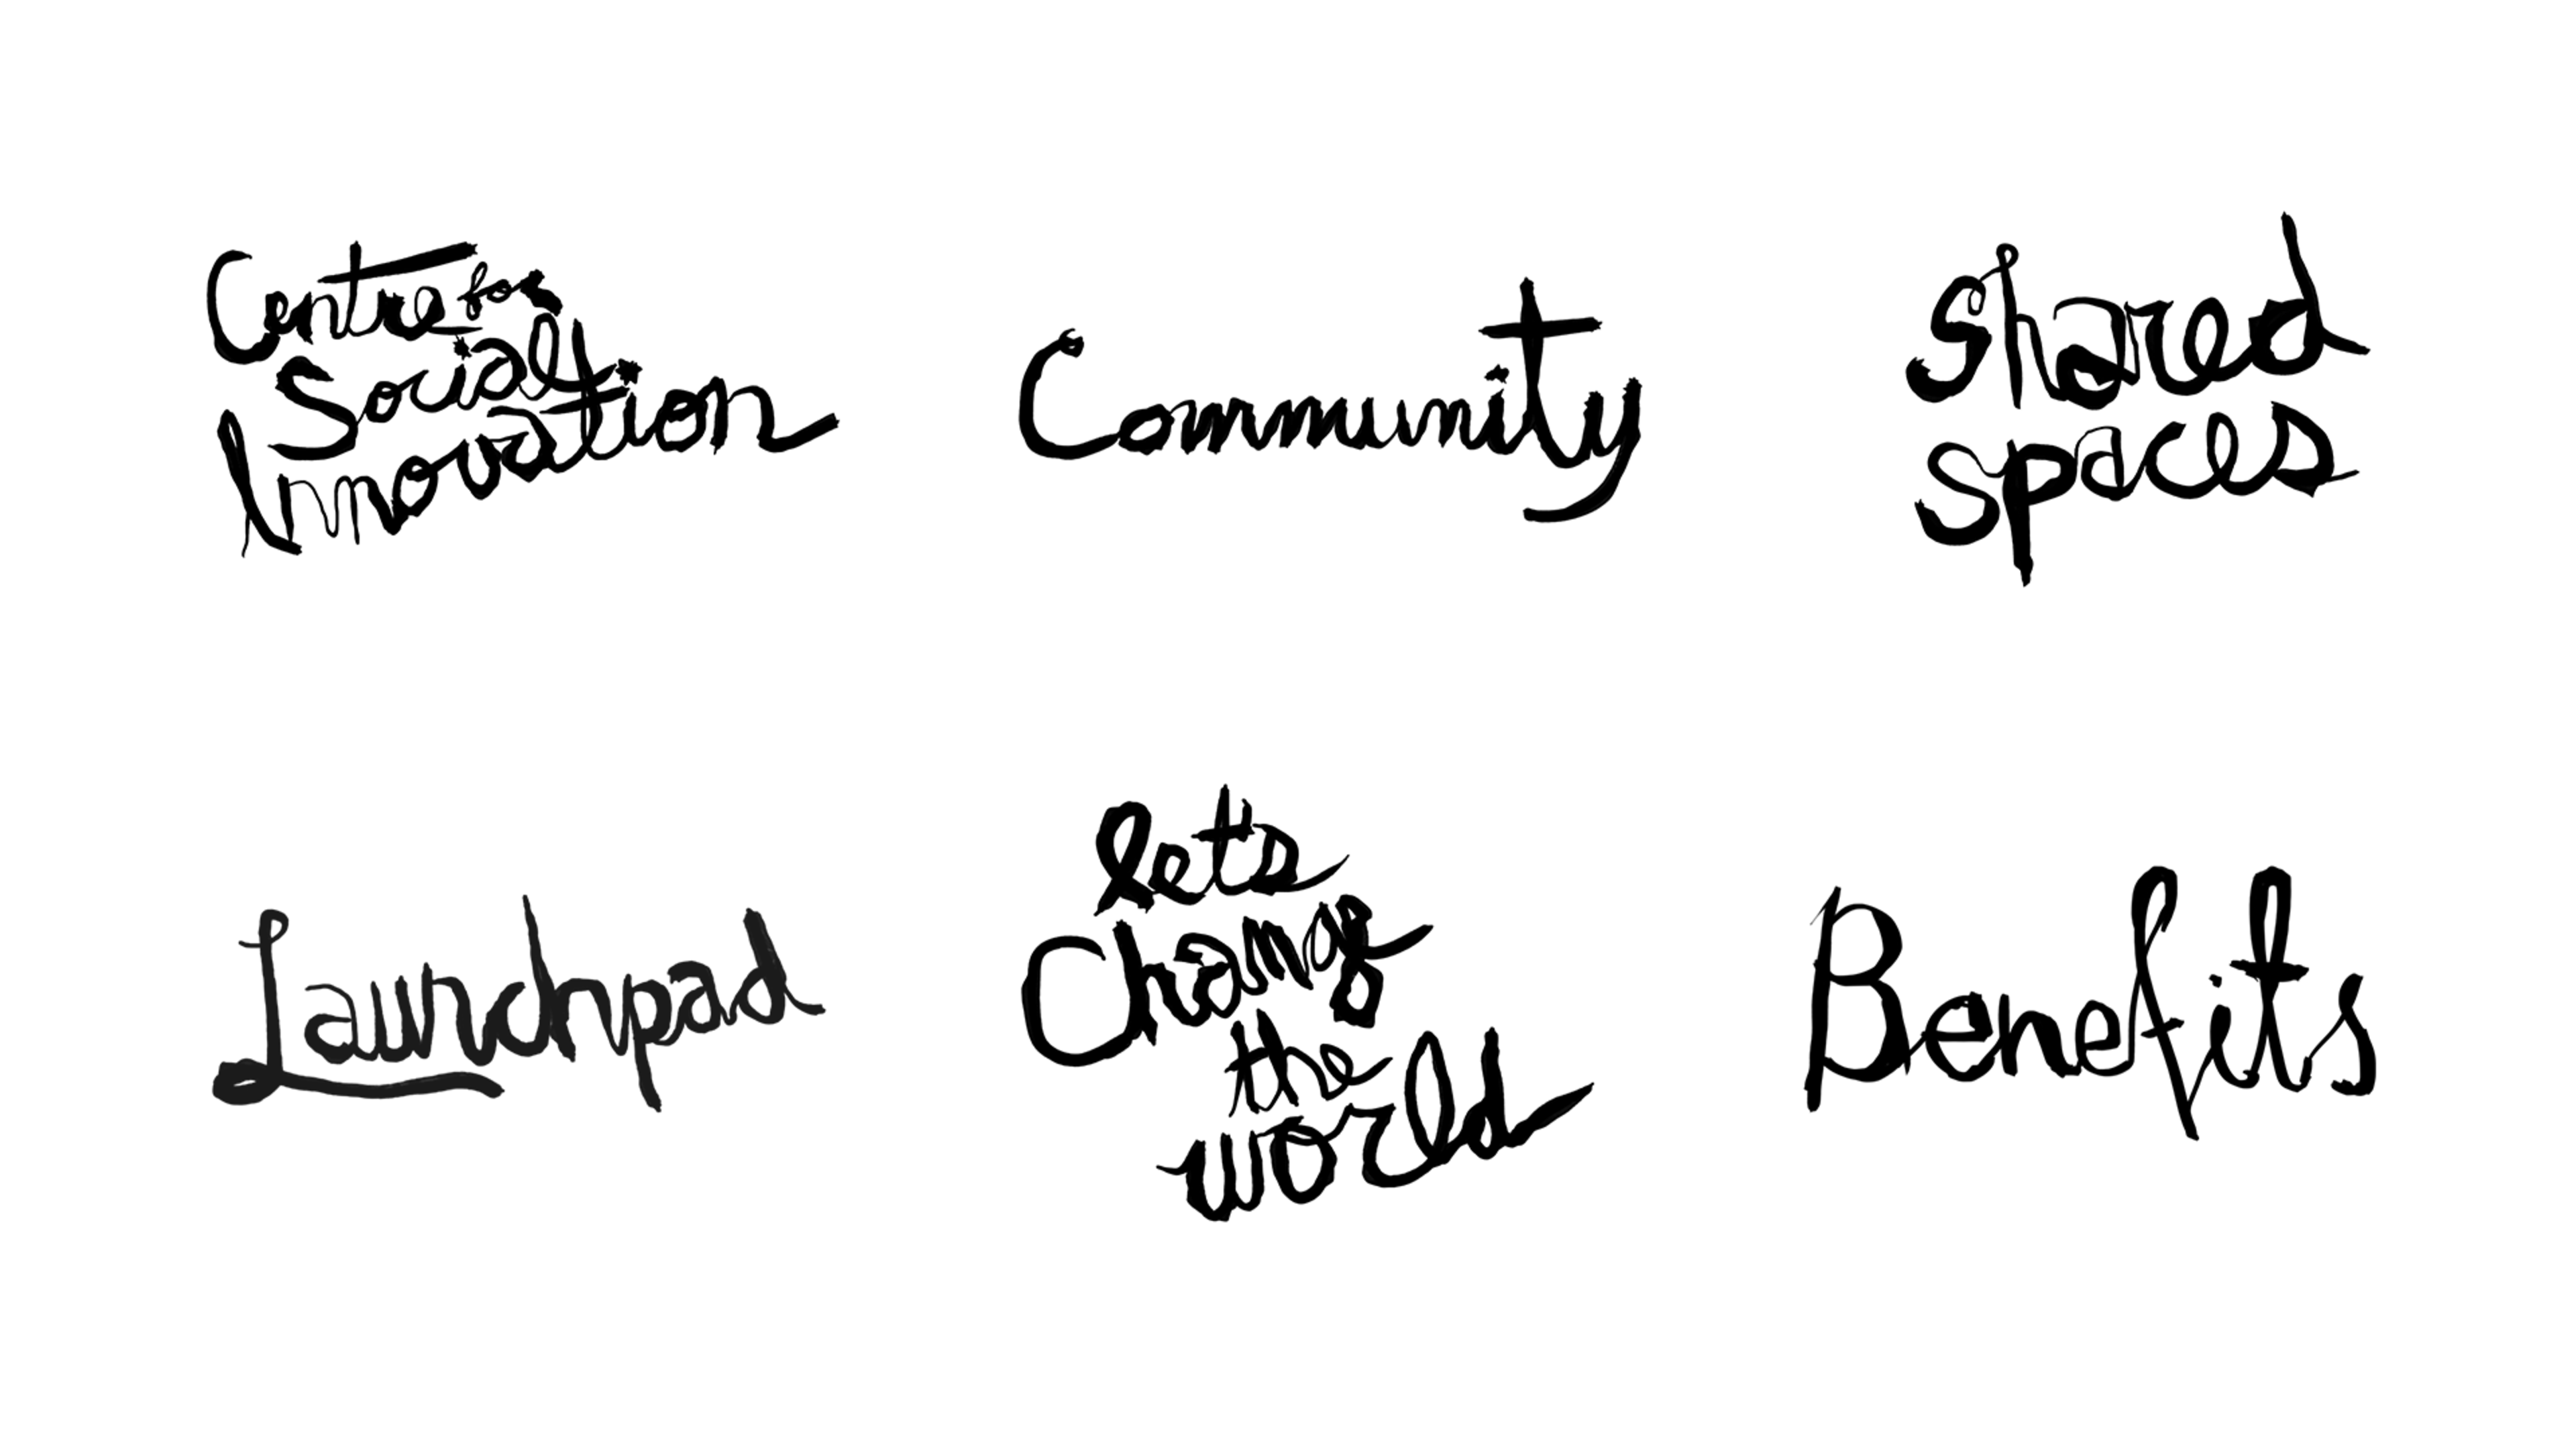 Handwritten titles that were used on the CSI website.